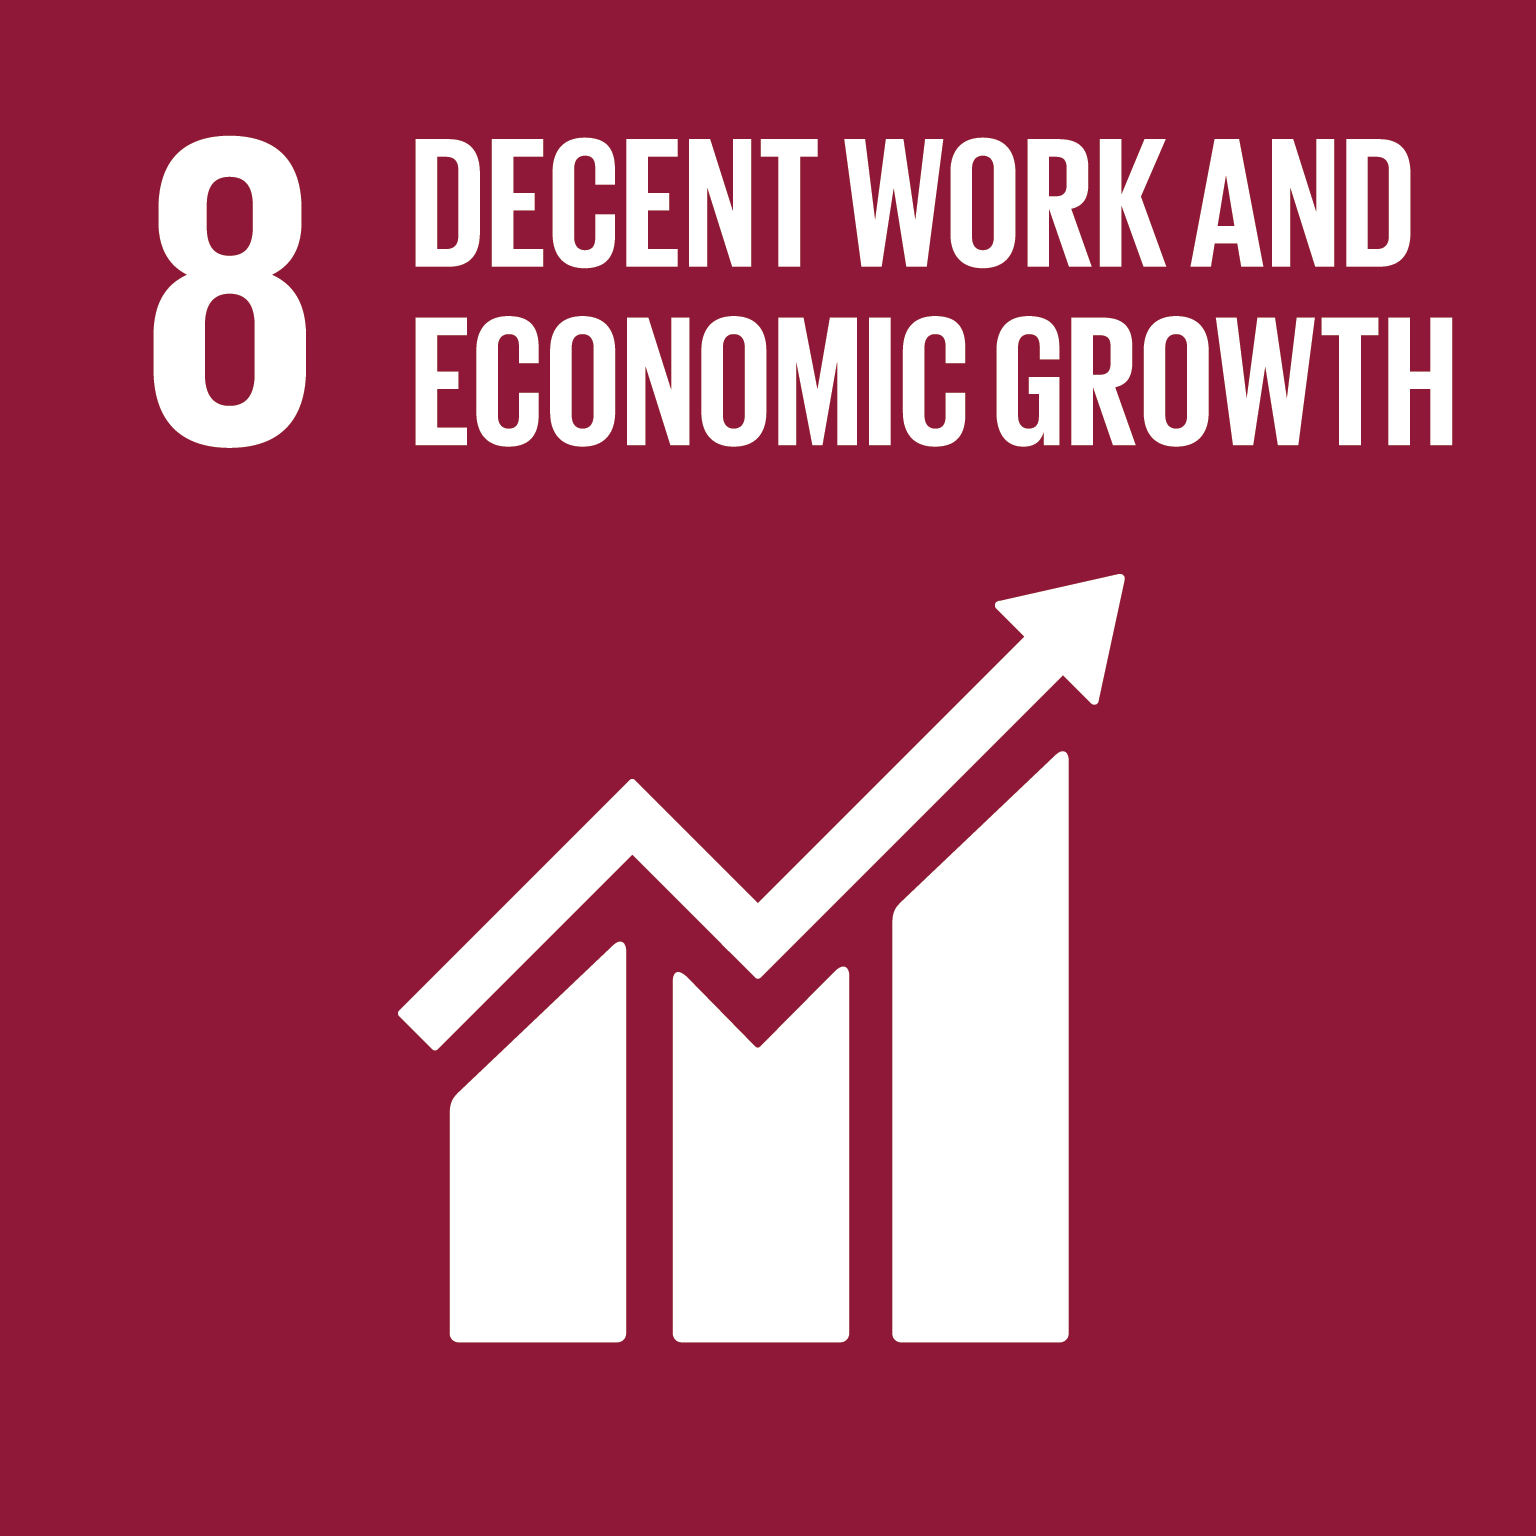 SDG 8 Posters